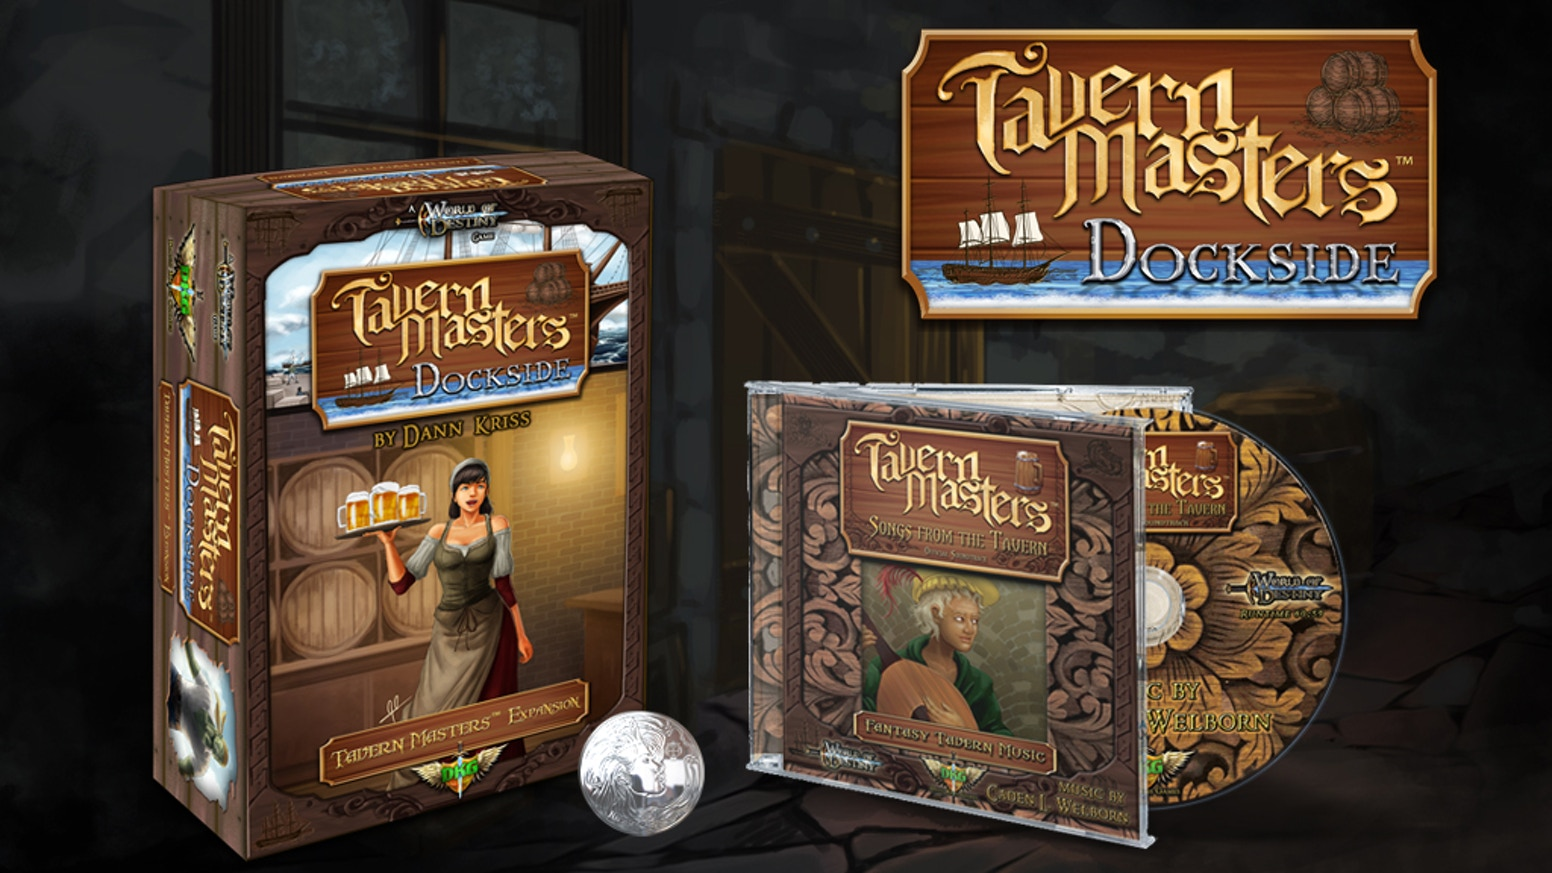 Tavern Masters Dockside Expansion And Soundtrack By Dann Kriss Switch Runner 3 Launch Edition Bonus English Us Games Help Fund The New For